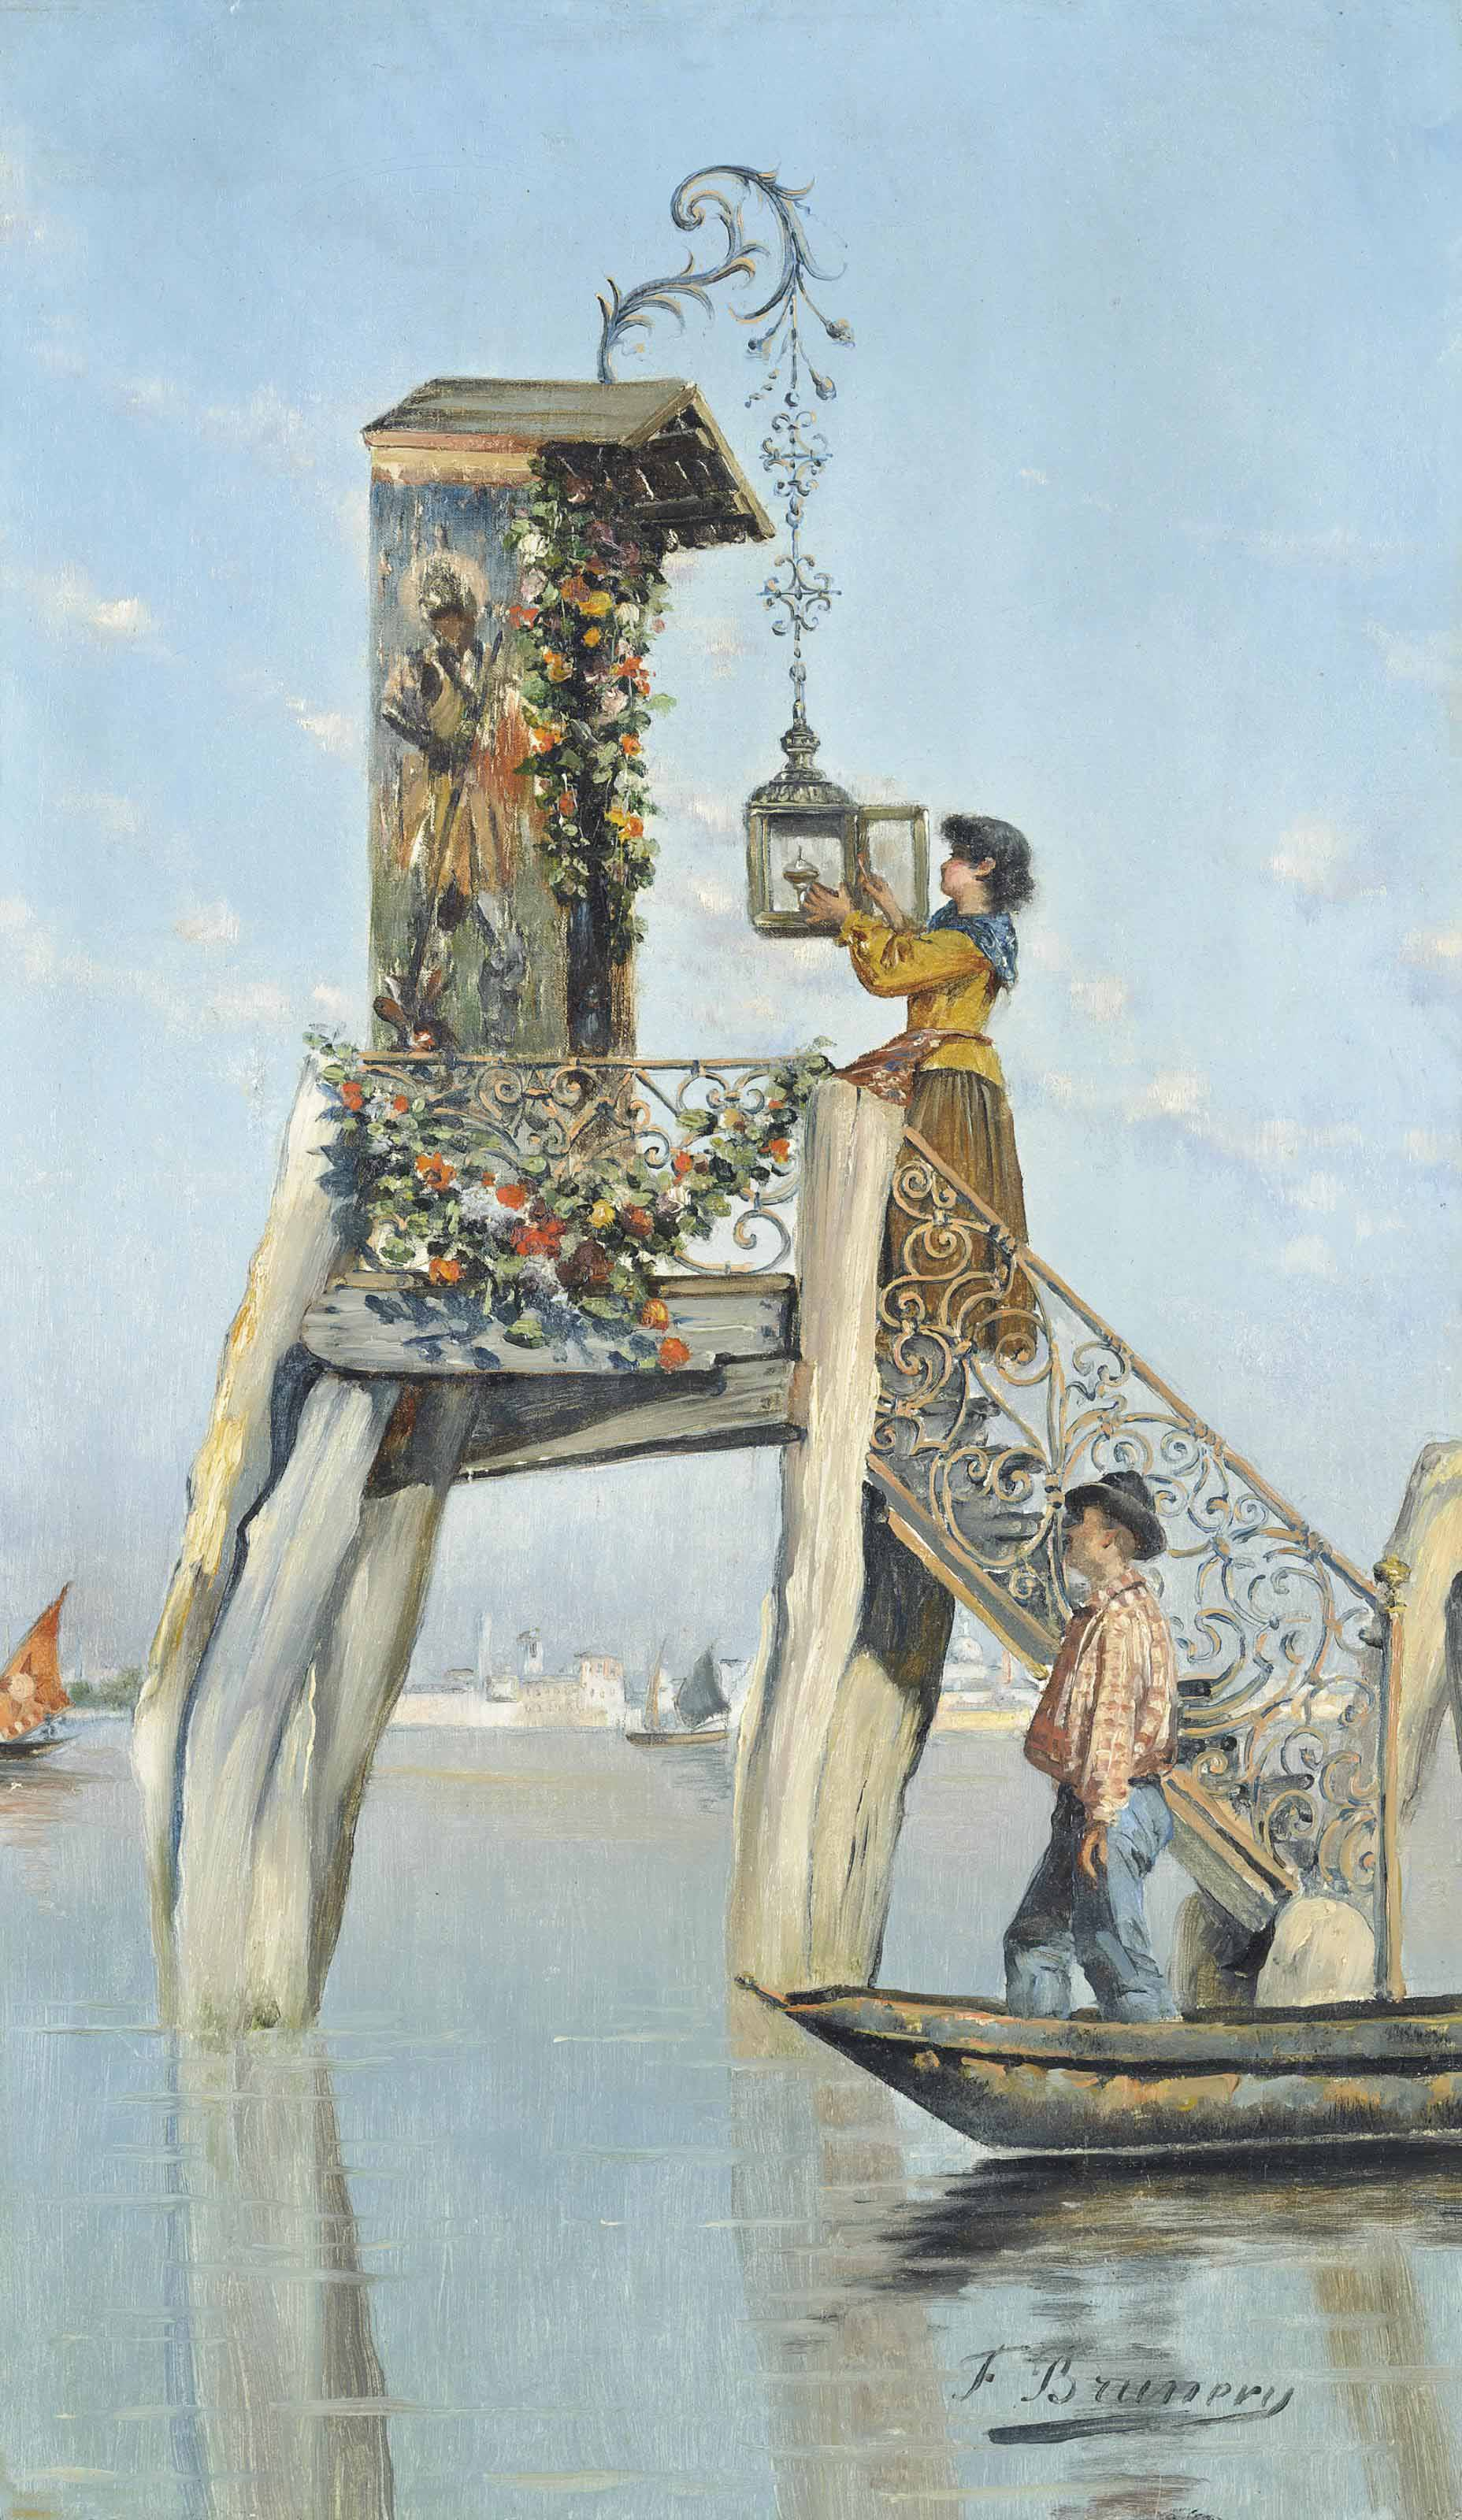 An offering on the Venetian lagoon